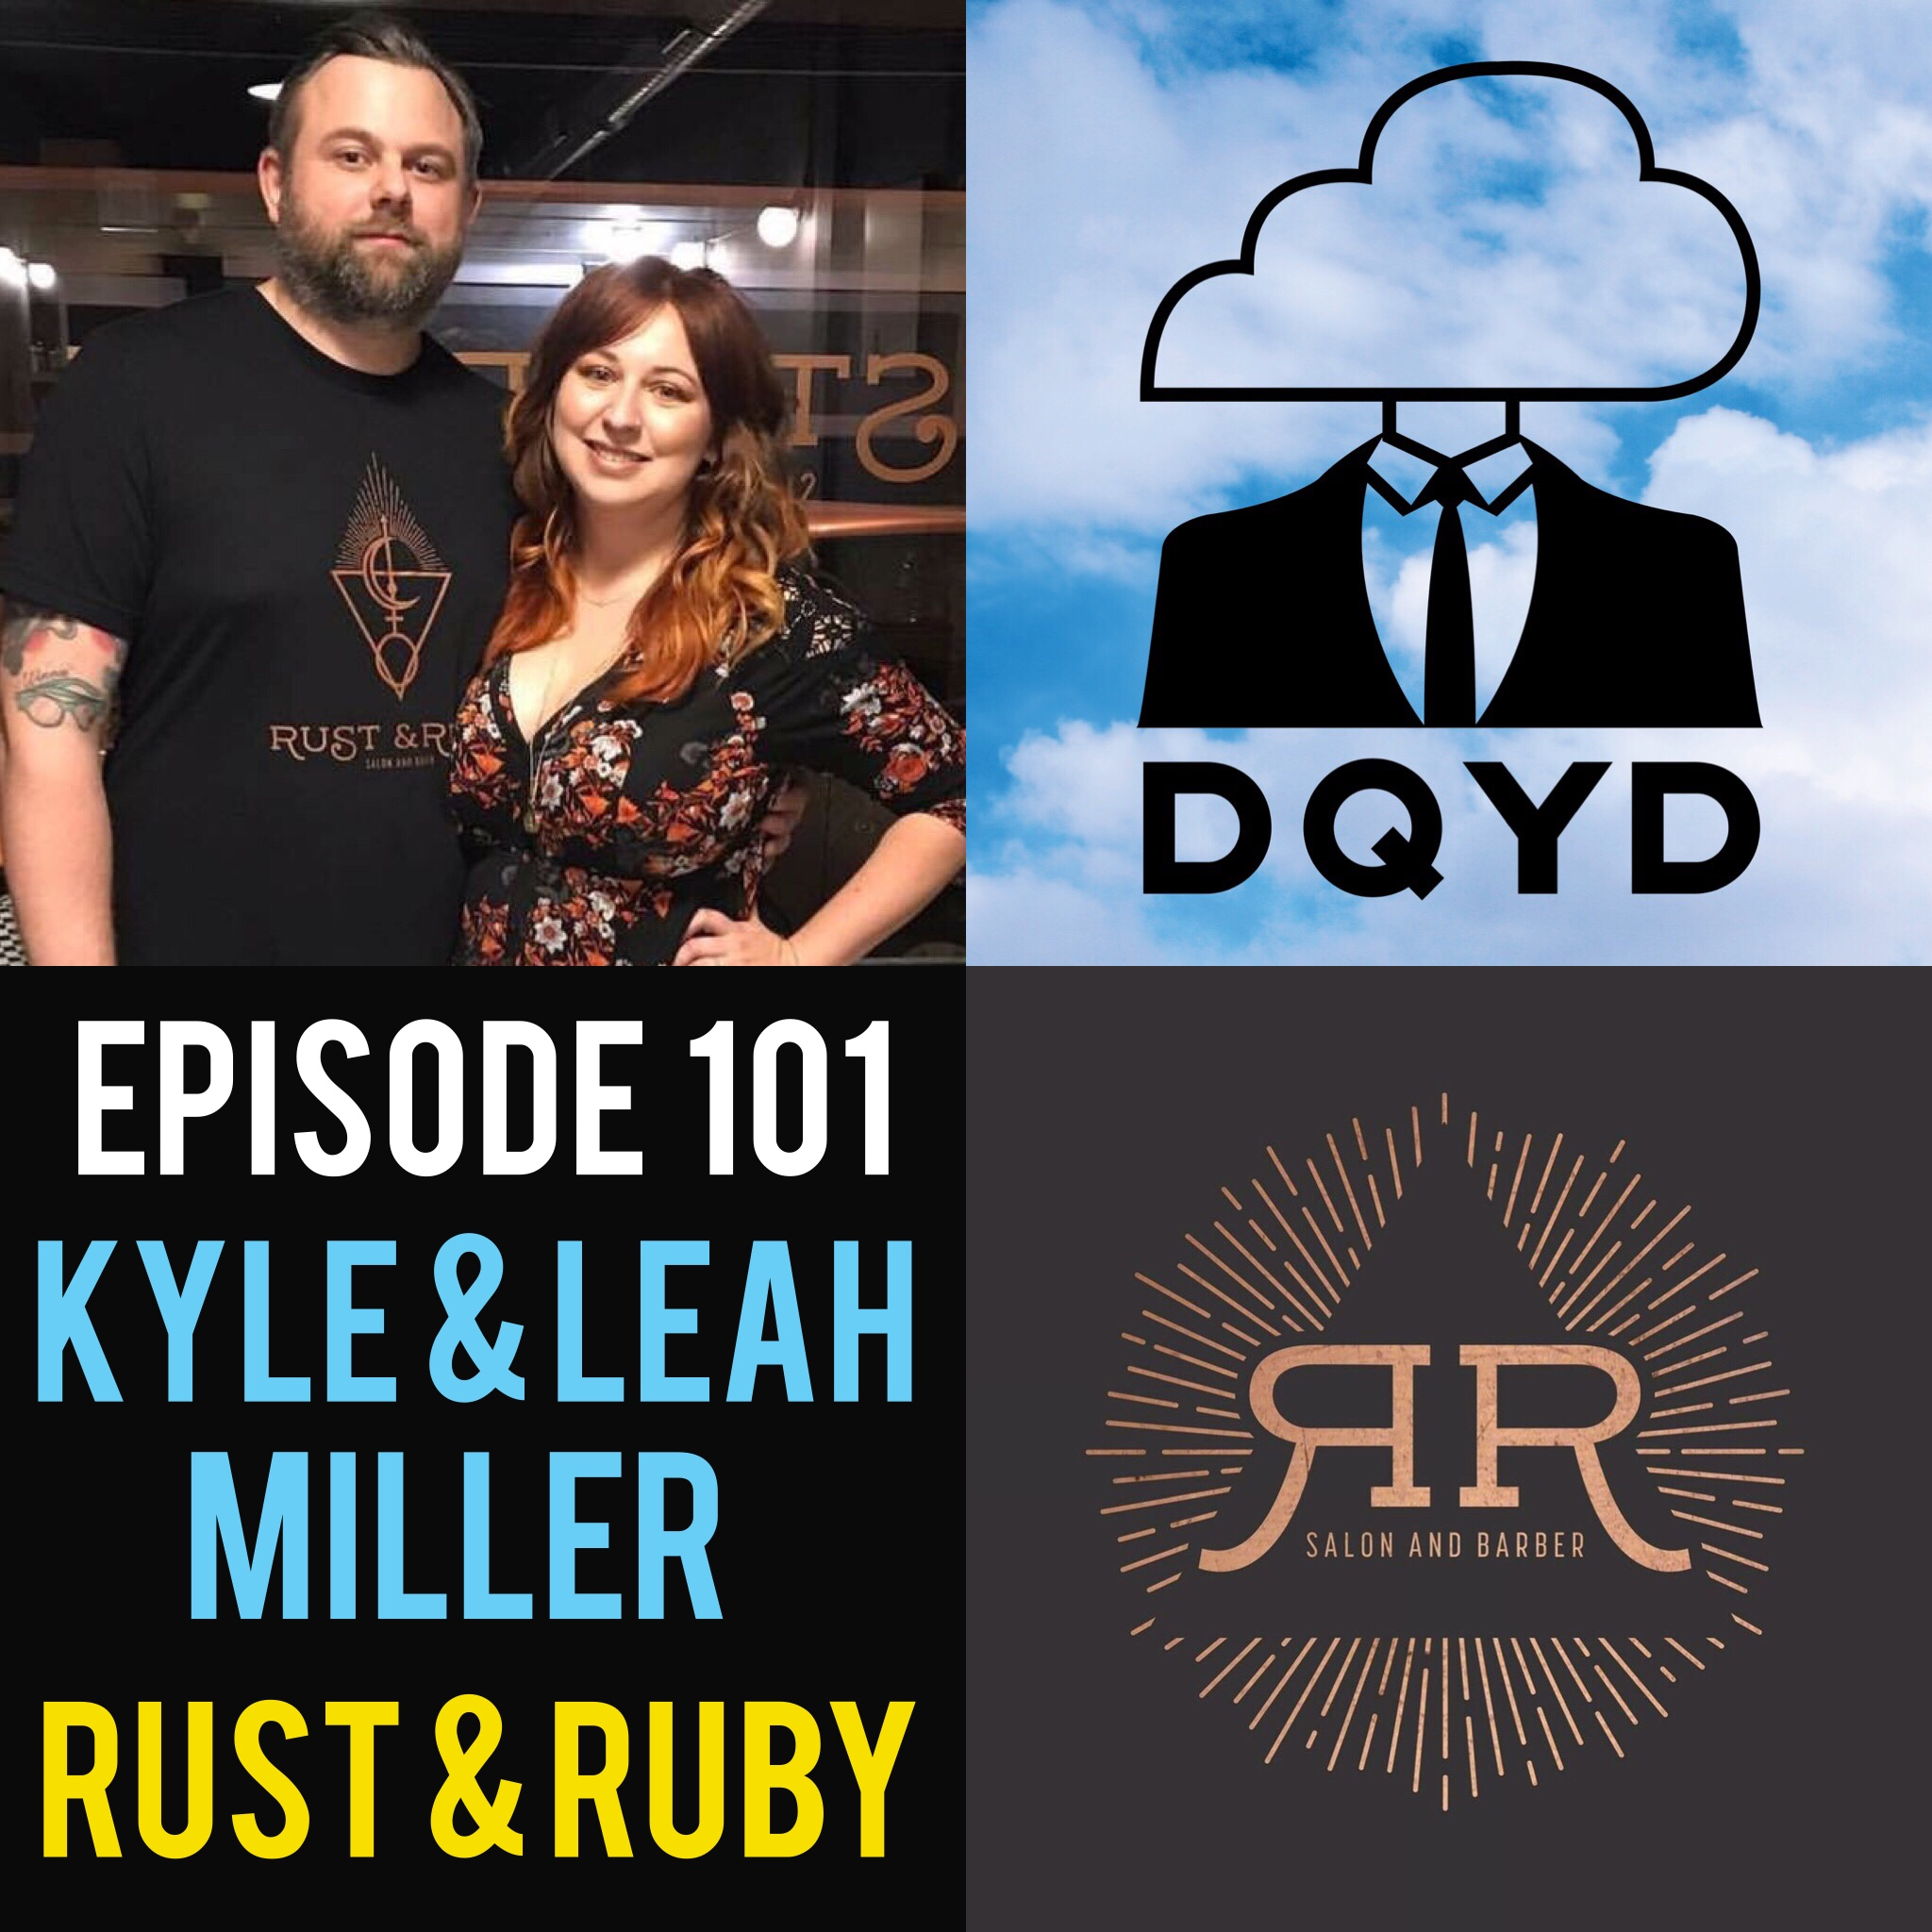 "Episode 101 with Entrepreneurs: Leah and Kyle Miller! From the unique, awesome interior to the wonderful staff, Rust & Ruby is a salon and barbershop unlike any other. The Millers have worked hard to bring the community a place that stands out for its hip style but still captures the warmth of going to an old-fashioned establishment. We cannot recommend them enough!    We have a fantastic song of the week in ""Honey Come on Home"" by the folk band ""The Zach Pietrini band"". https://www.discogs.com/The-Zach-Pietrini-Band-Holding-Onto-Ghosts/release/10405264"